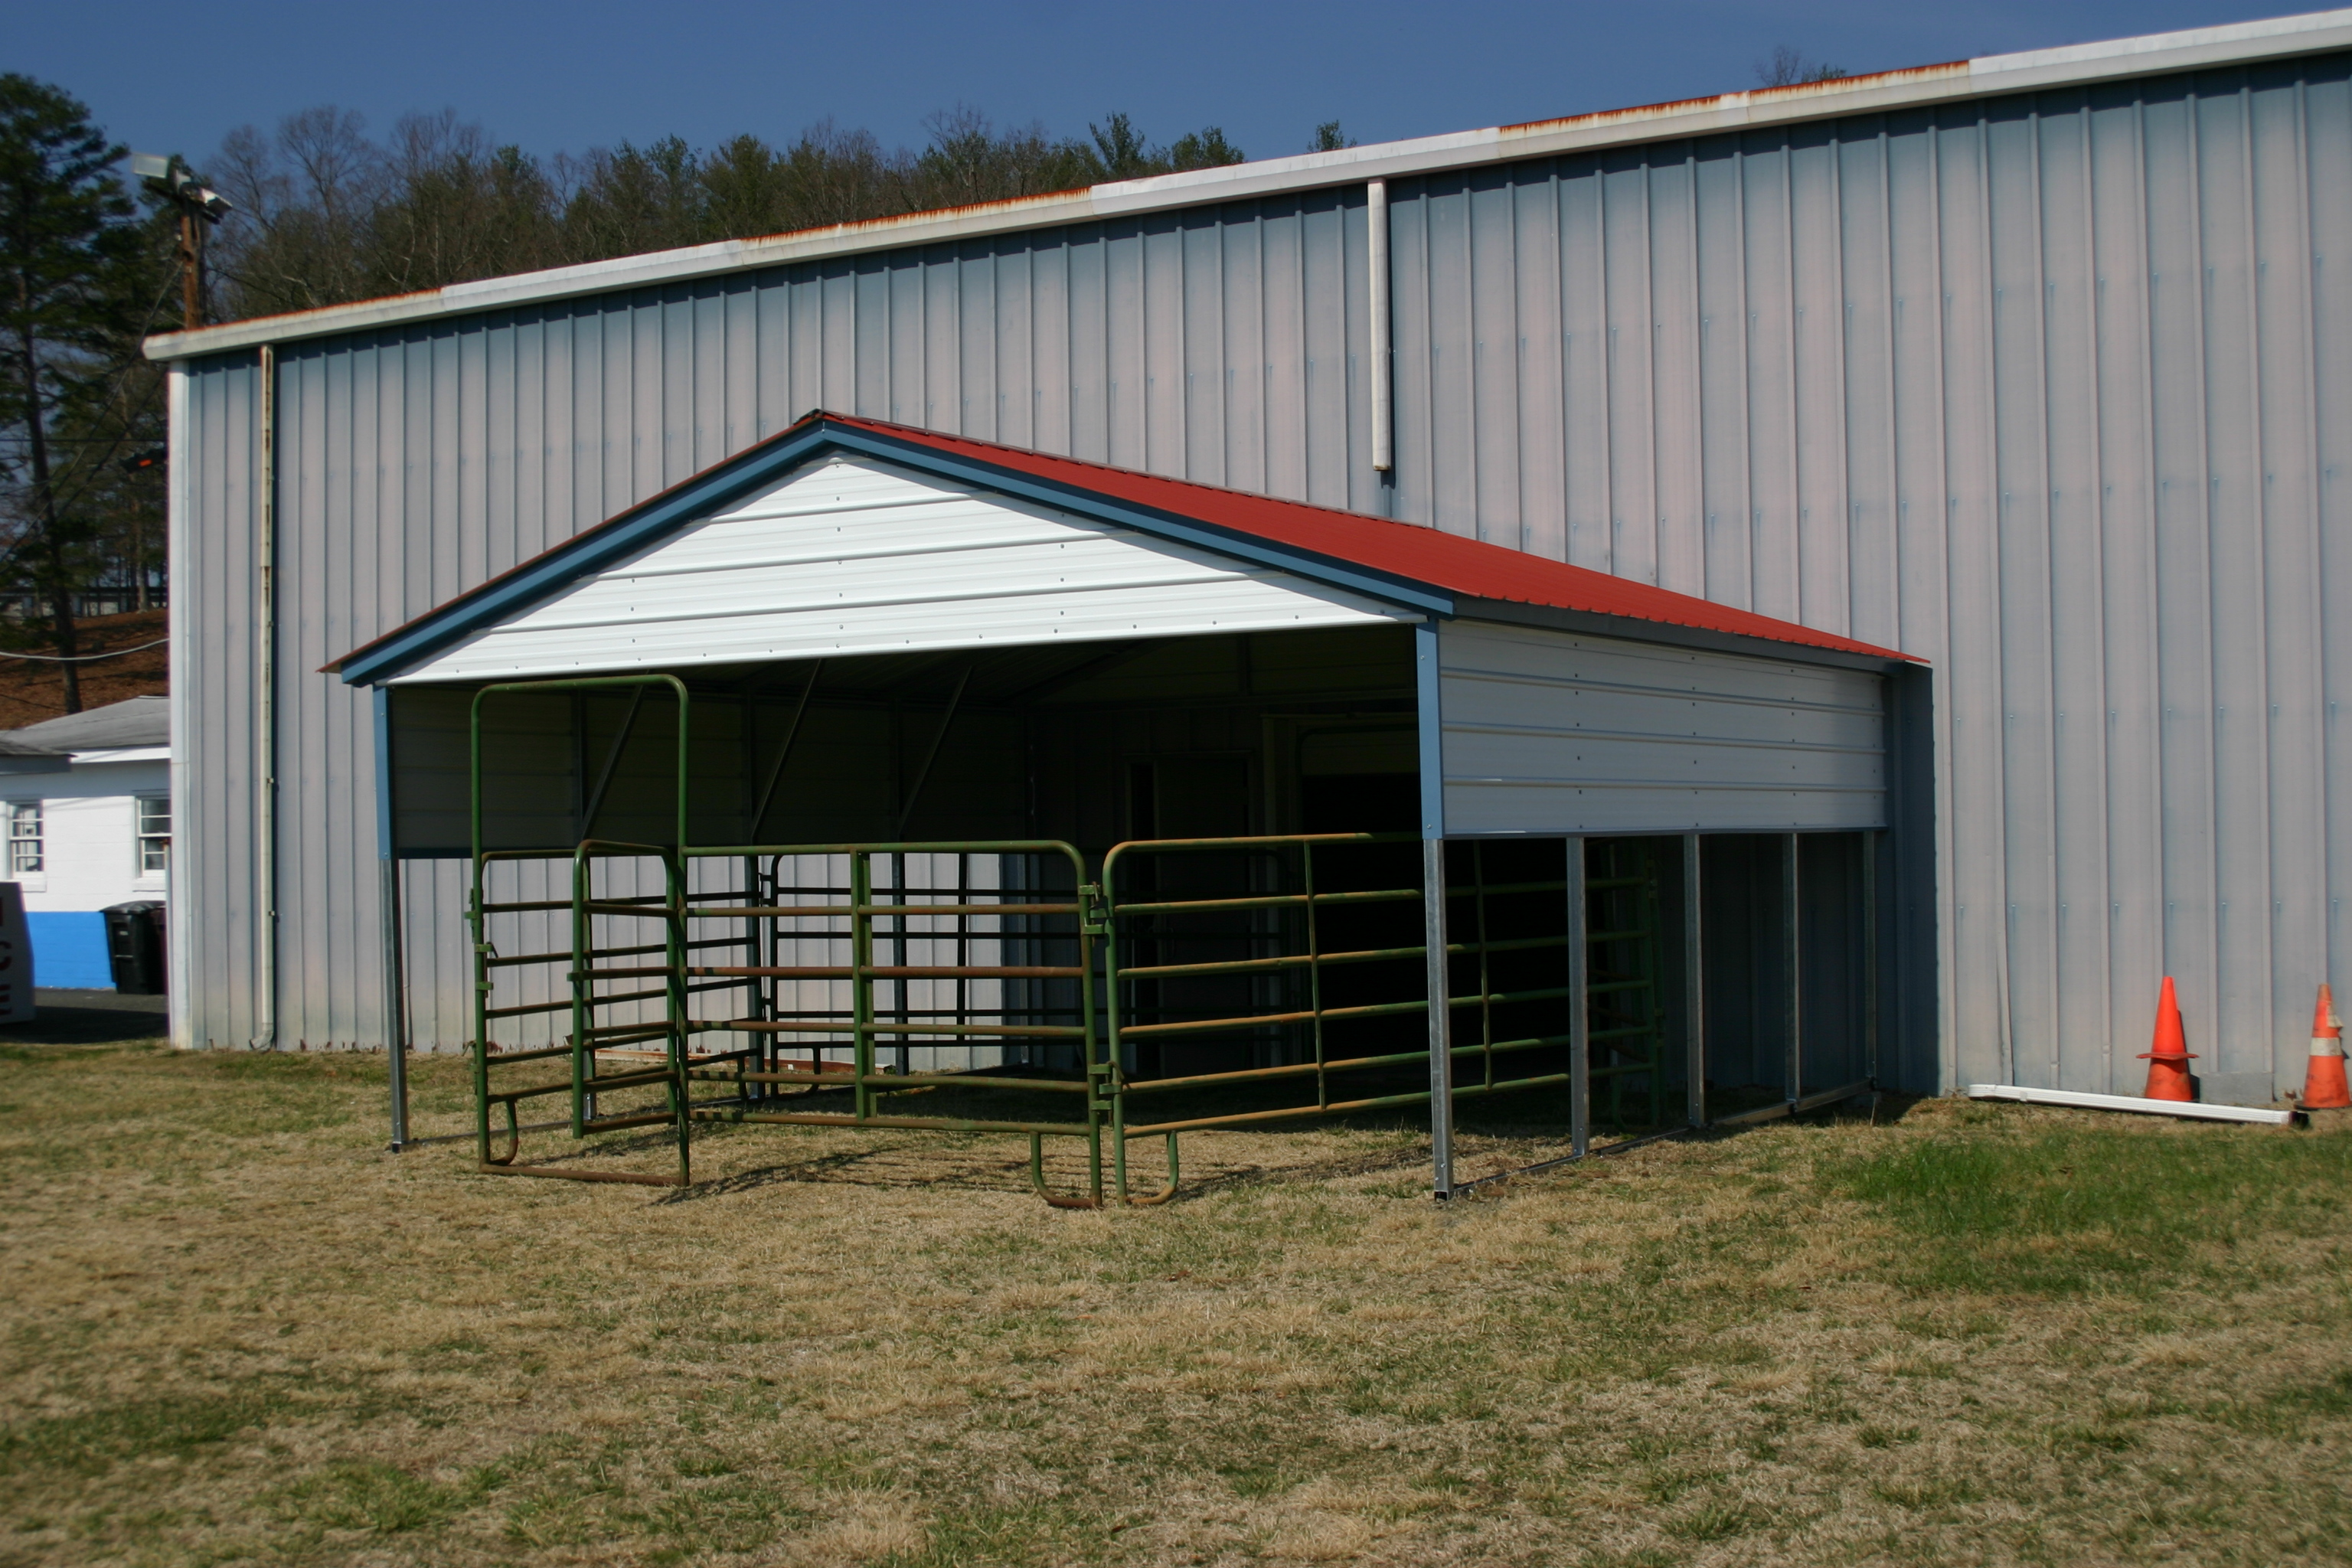 muskogee county ok carports steel carports muskogee county oklahoma. Black Bedroom Furniture Sets. Home Design Ideas